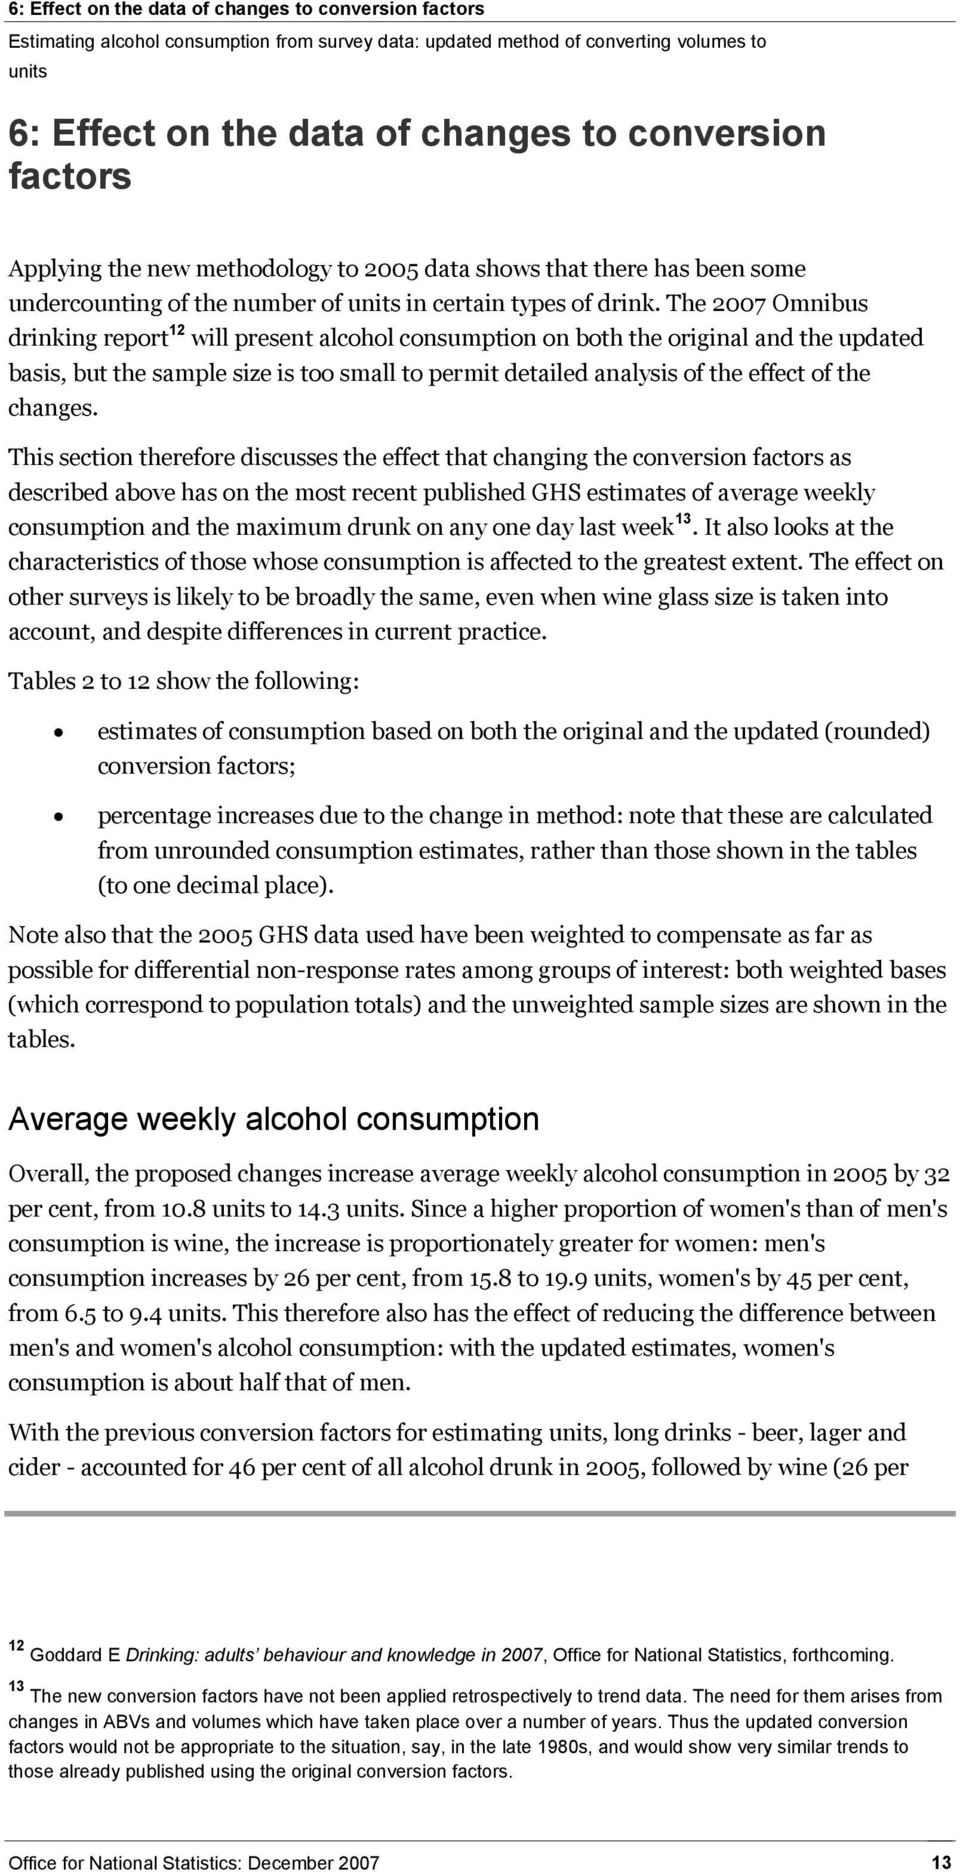 The 2007 Omnibus drinking report 12 will present alcohol consumption on both the original and the updated basis, but the sample size is too small to permit detailed analysis of the effect of the